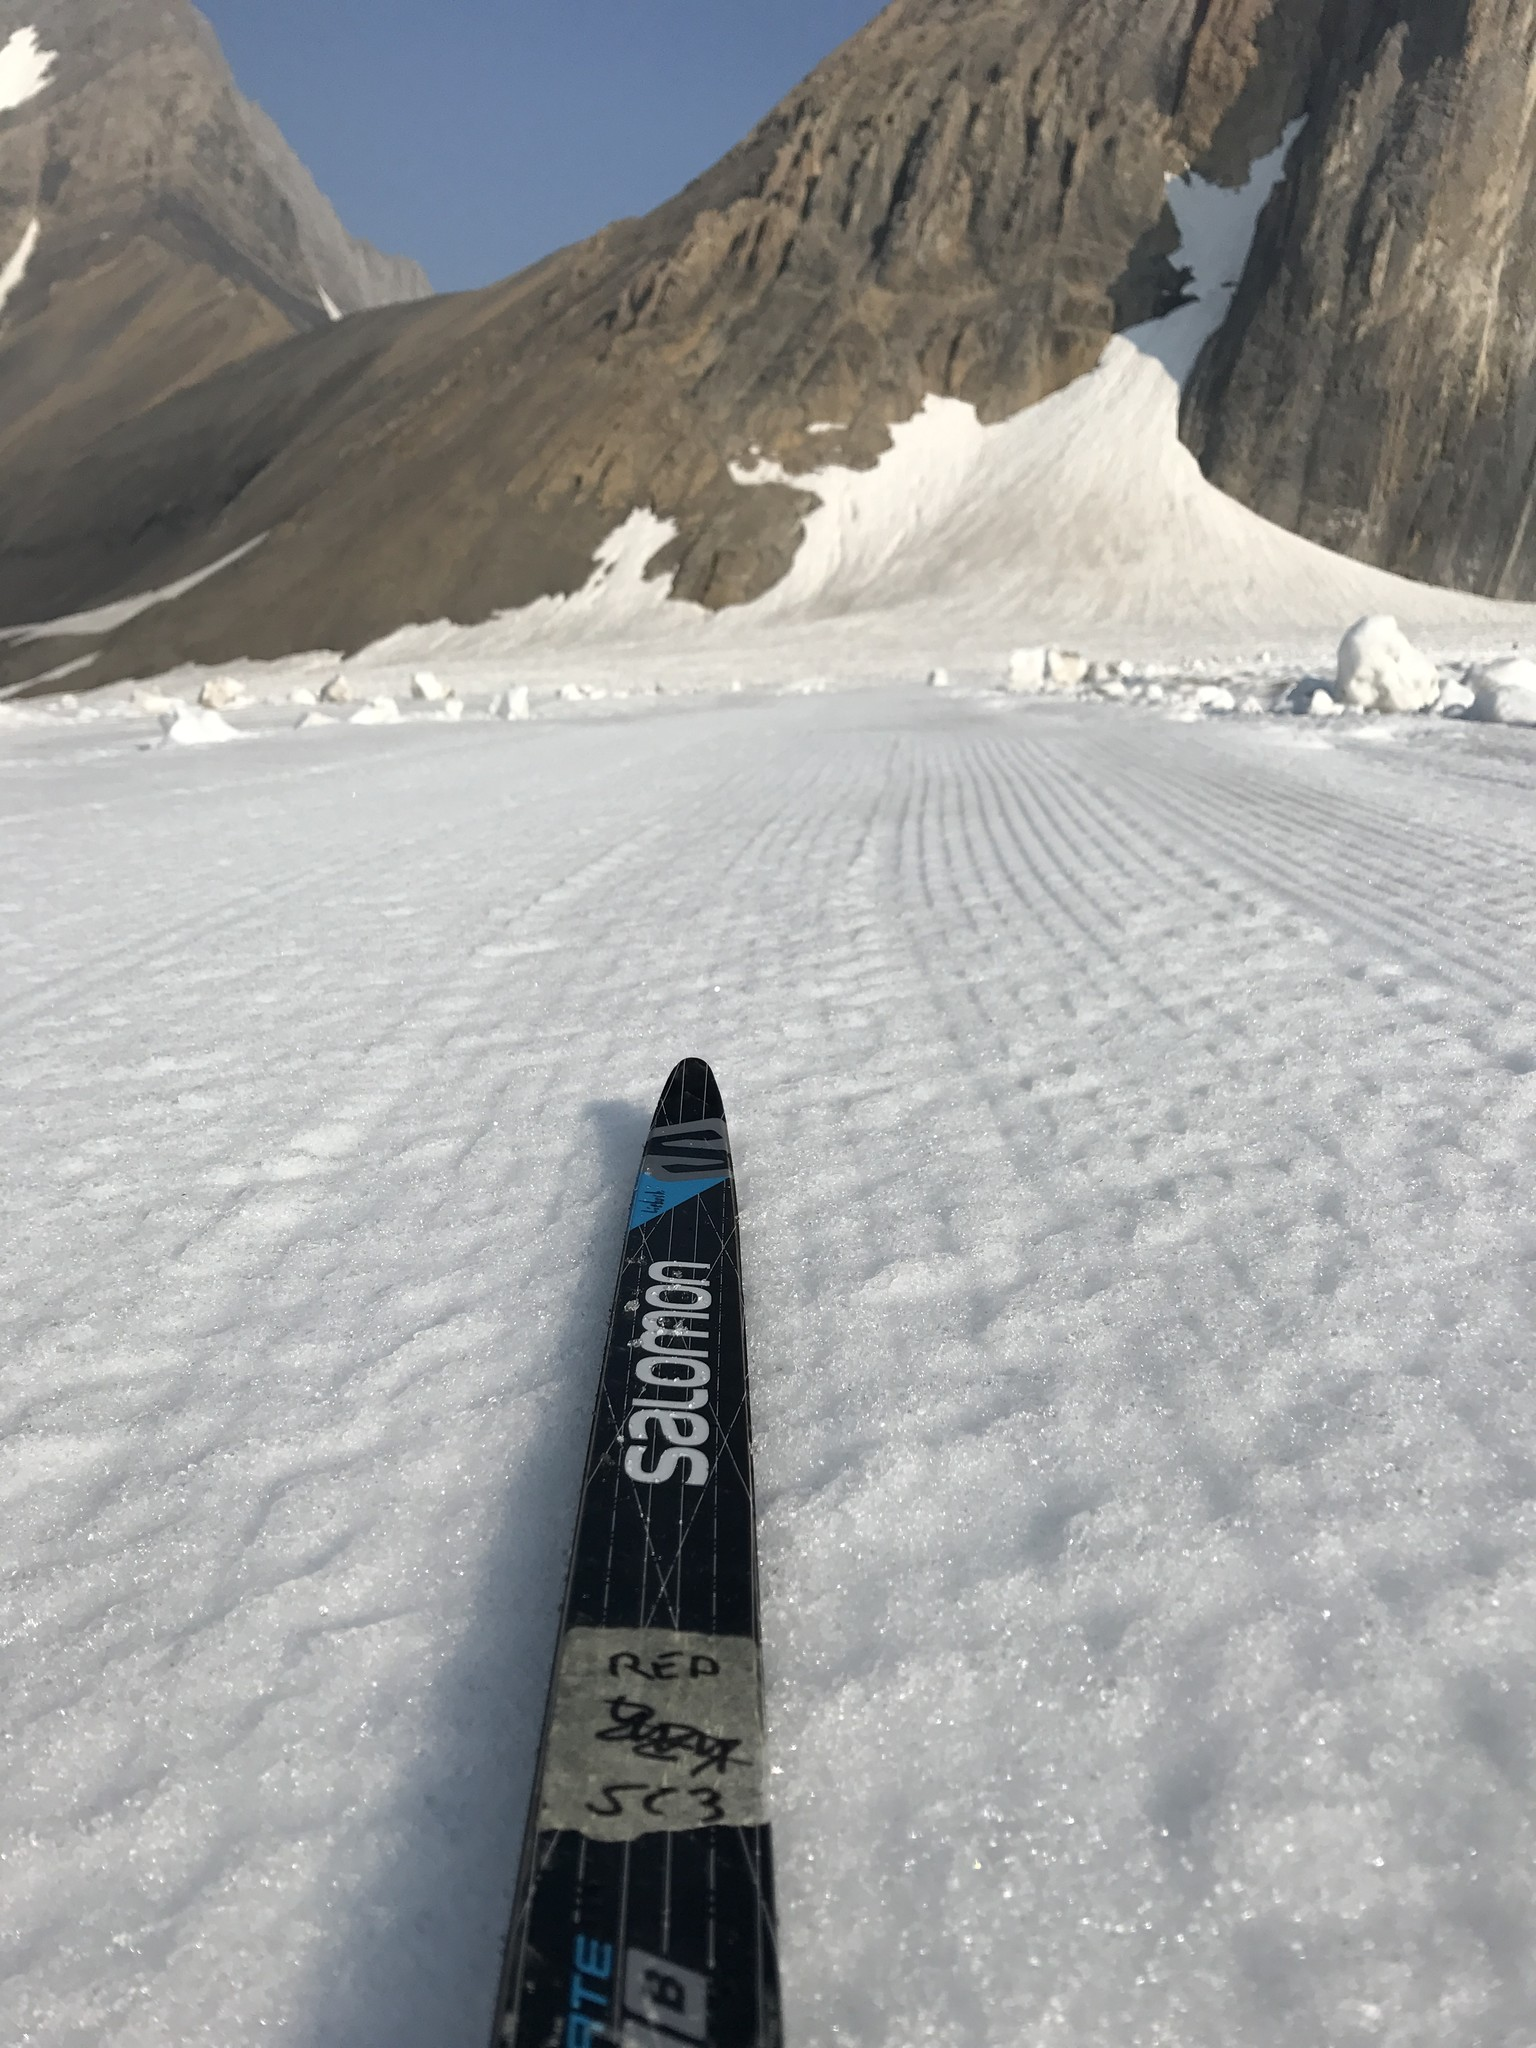 Salomonatomic ski picking recap pioneer midwest slab classic blue cold i tried this ski for the first time in november of 2015 isaac wilson nordic commercial manager and good friend took me aside sciox Images